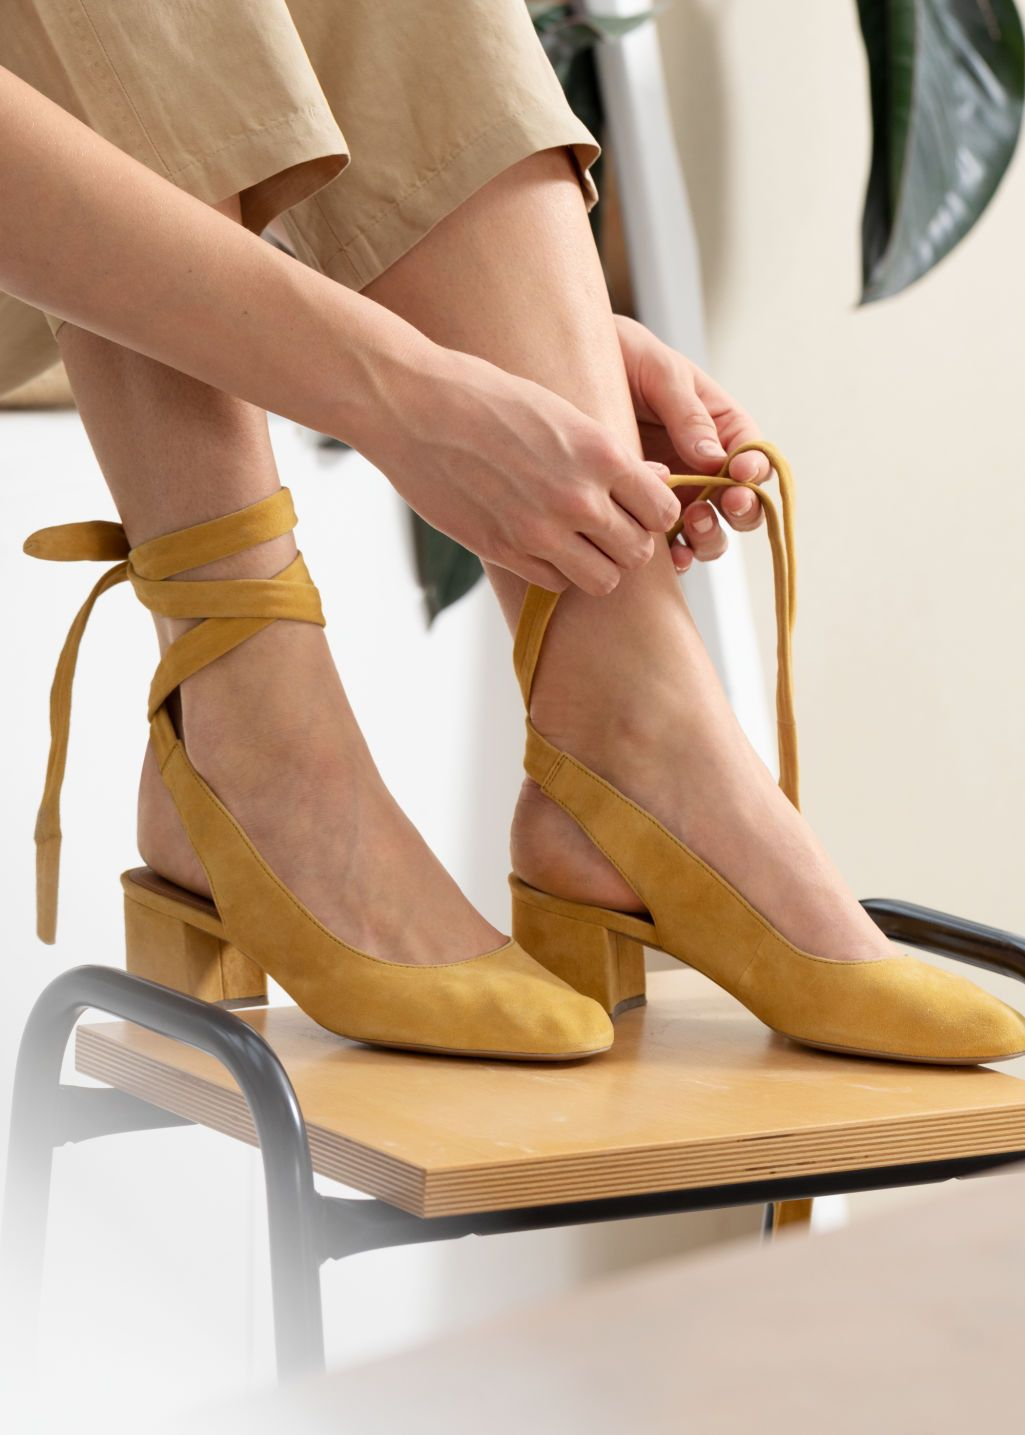 8462d5f99 Suede Lace Up Slingback Pumps - Mustard - Heeled sandals - & Other Stories